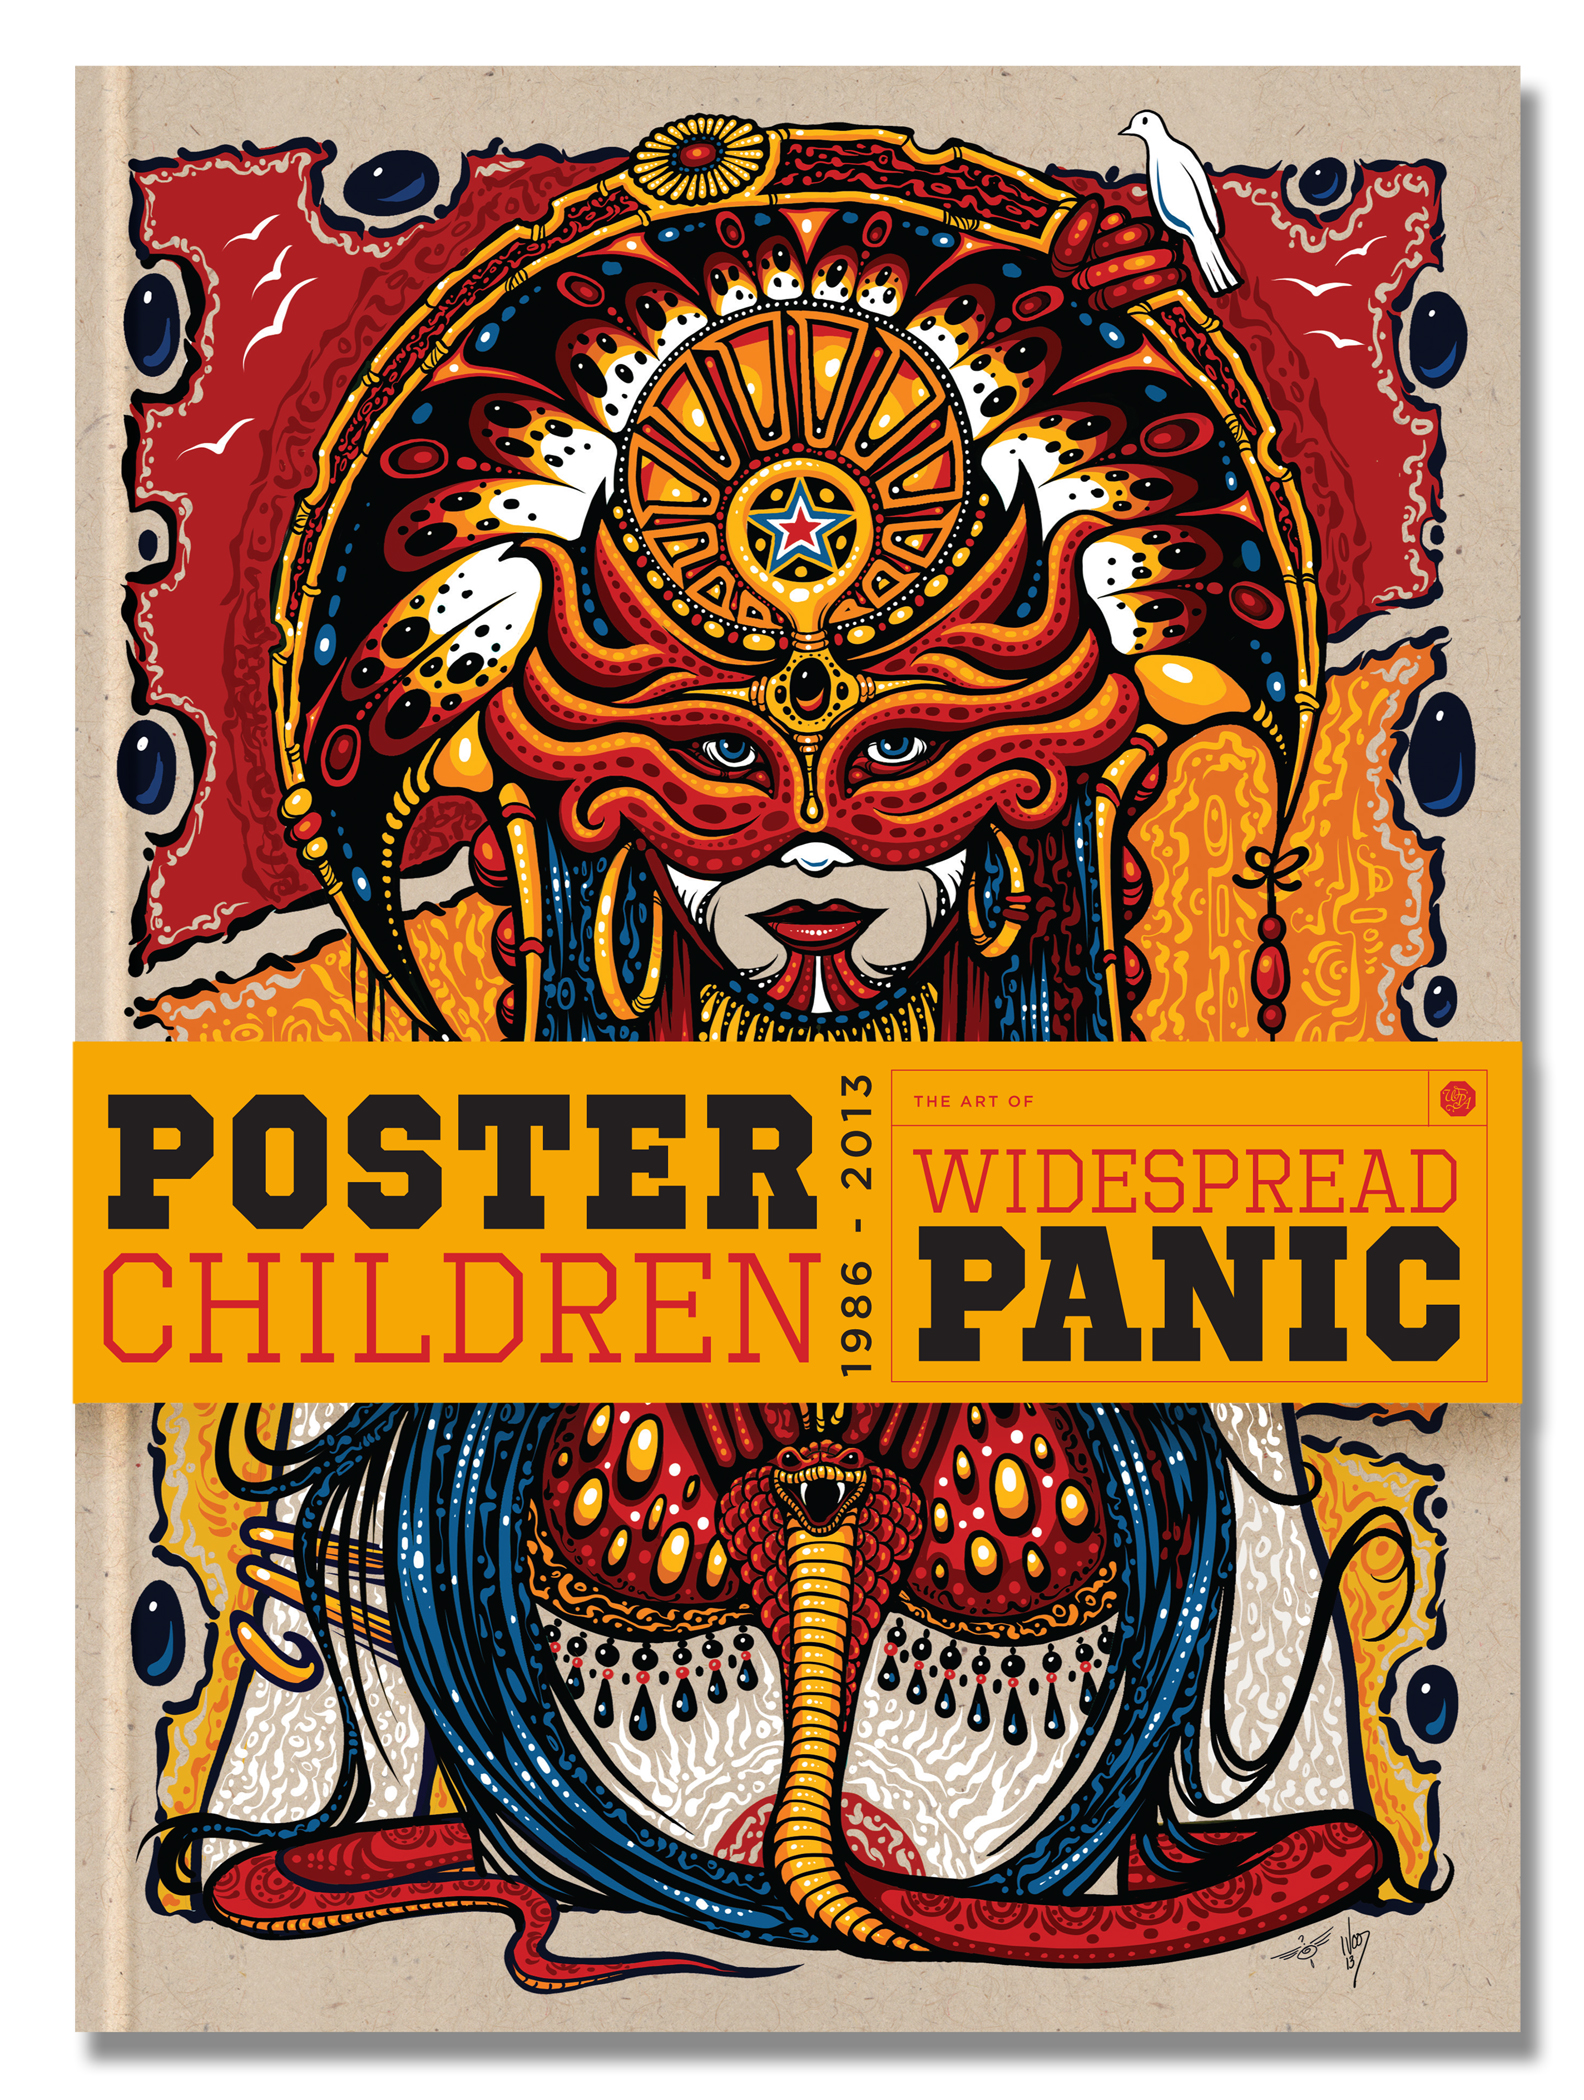 Widespread Panic - Poster Children--The Artwork of Widespread Panic